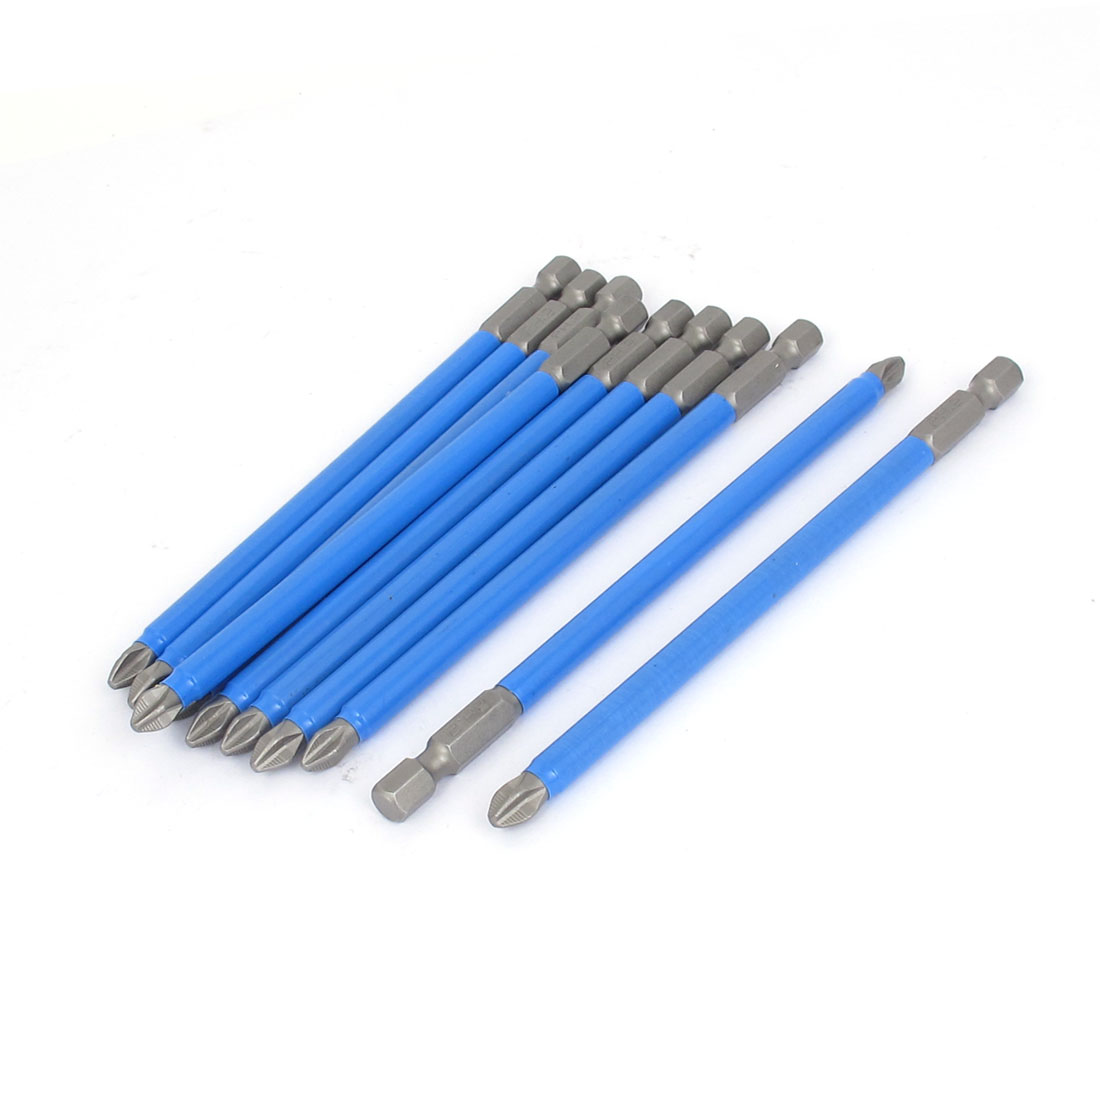 10pcs 6.5mm PH2 Phillips Driver Bits S2 Steel Magnetic Hex Shank Screwdriver Bit